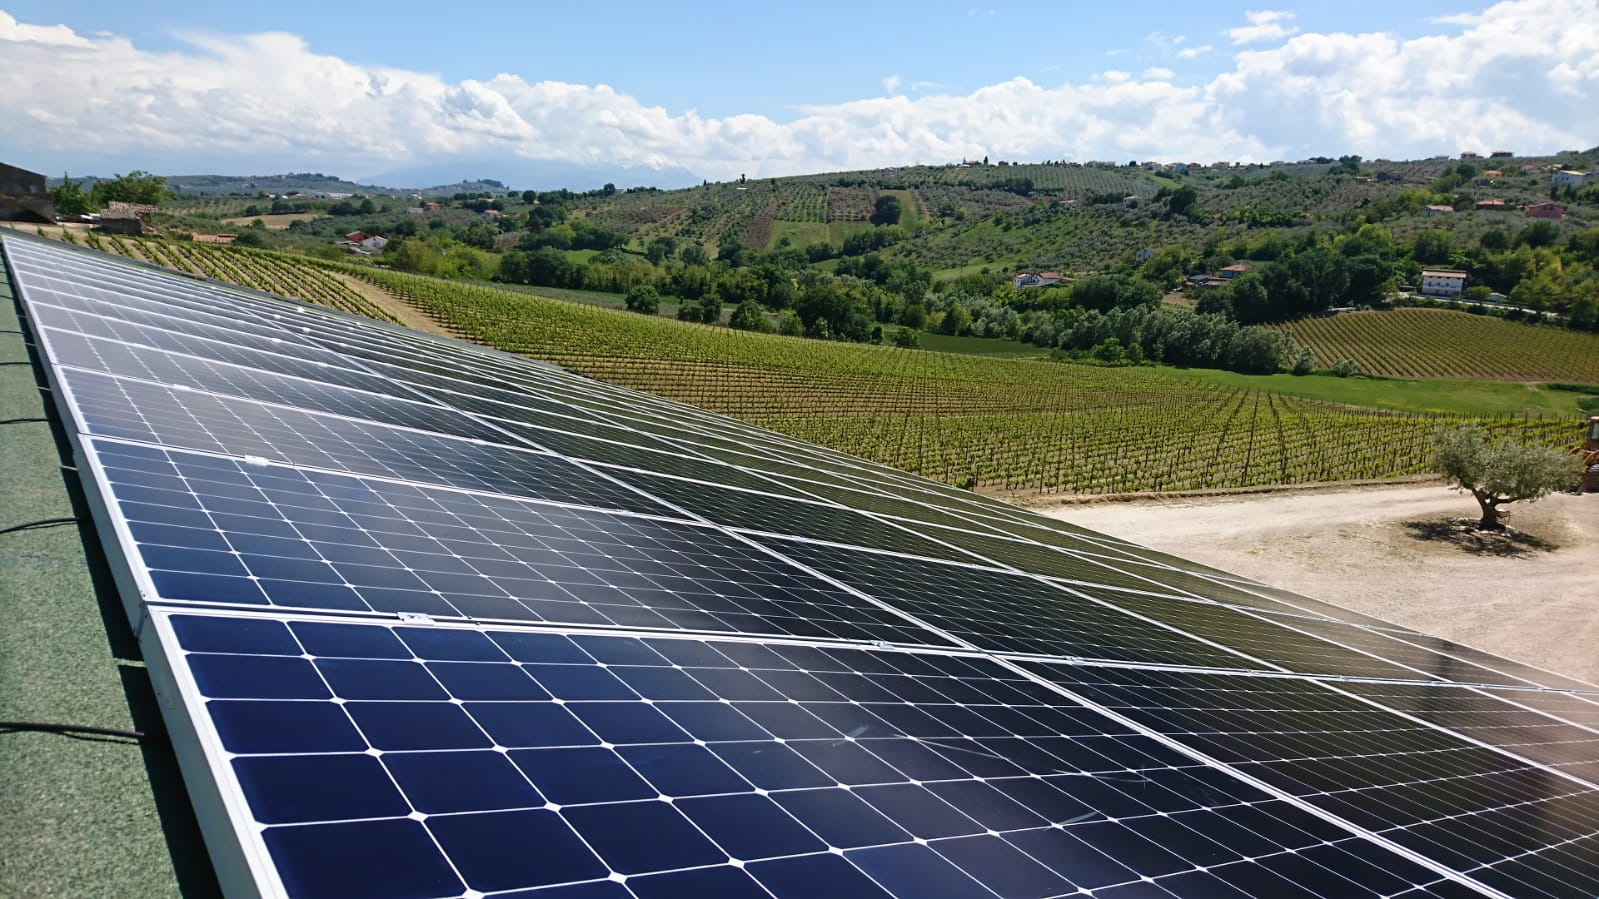 SunPower® rende il vino sostenibile a Collecorvino (PE)